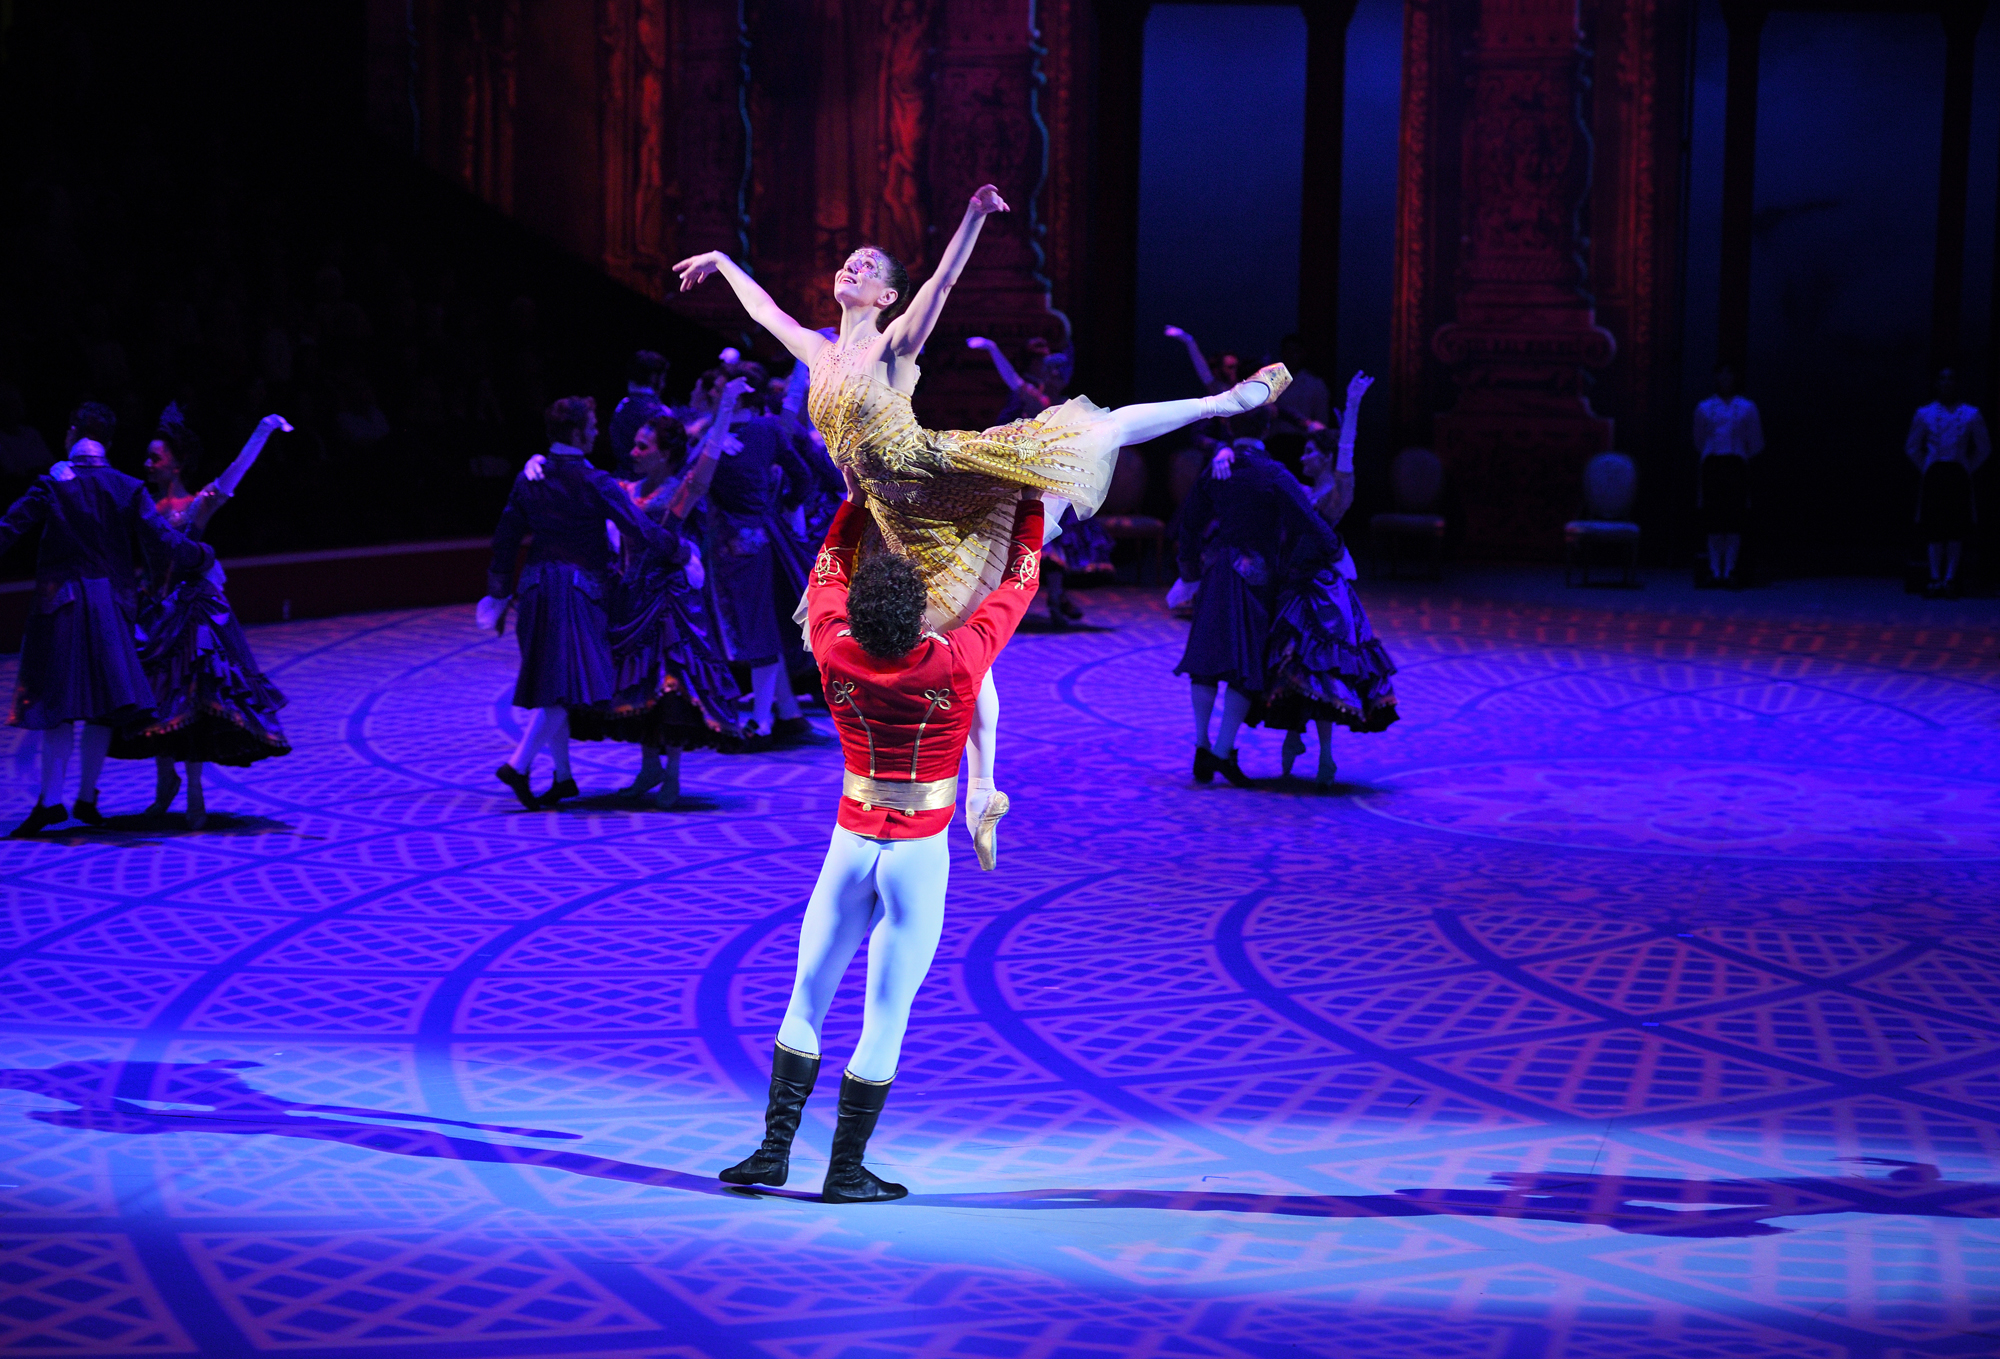 Cinderella in-the-round. English National Ballet Lead Principals Alina Cojocaru and Isaac Hernandez in Cinderella in-the-round.